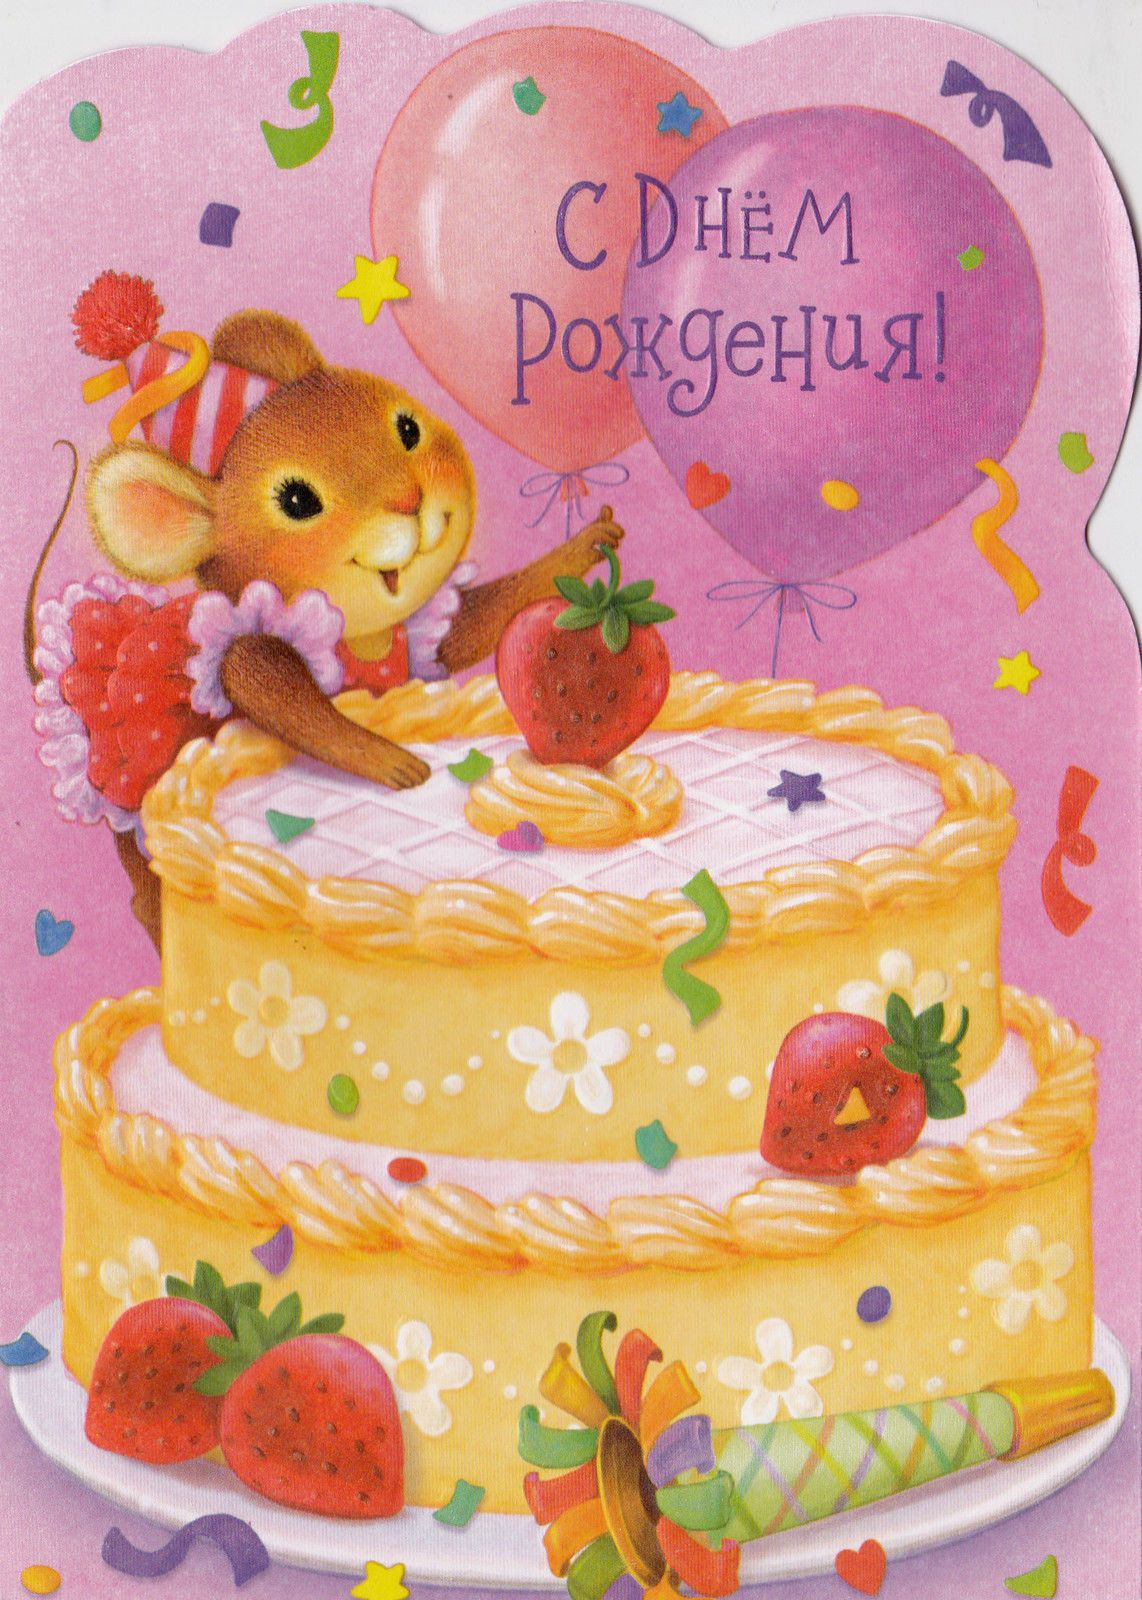 RARE Mouse with cake Birthday embossed Russian modern folding greeting card | eBay